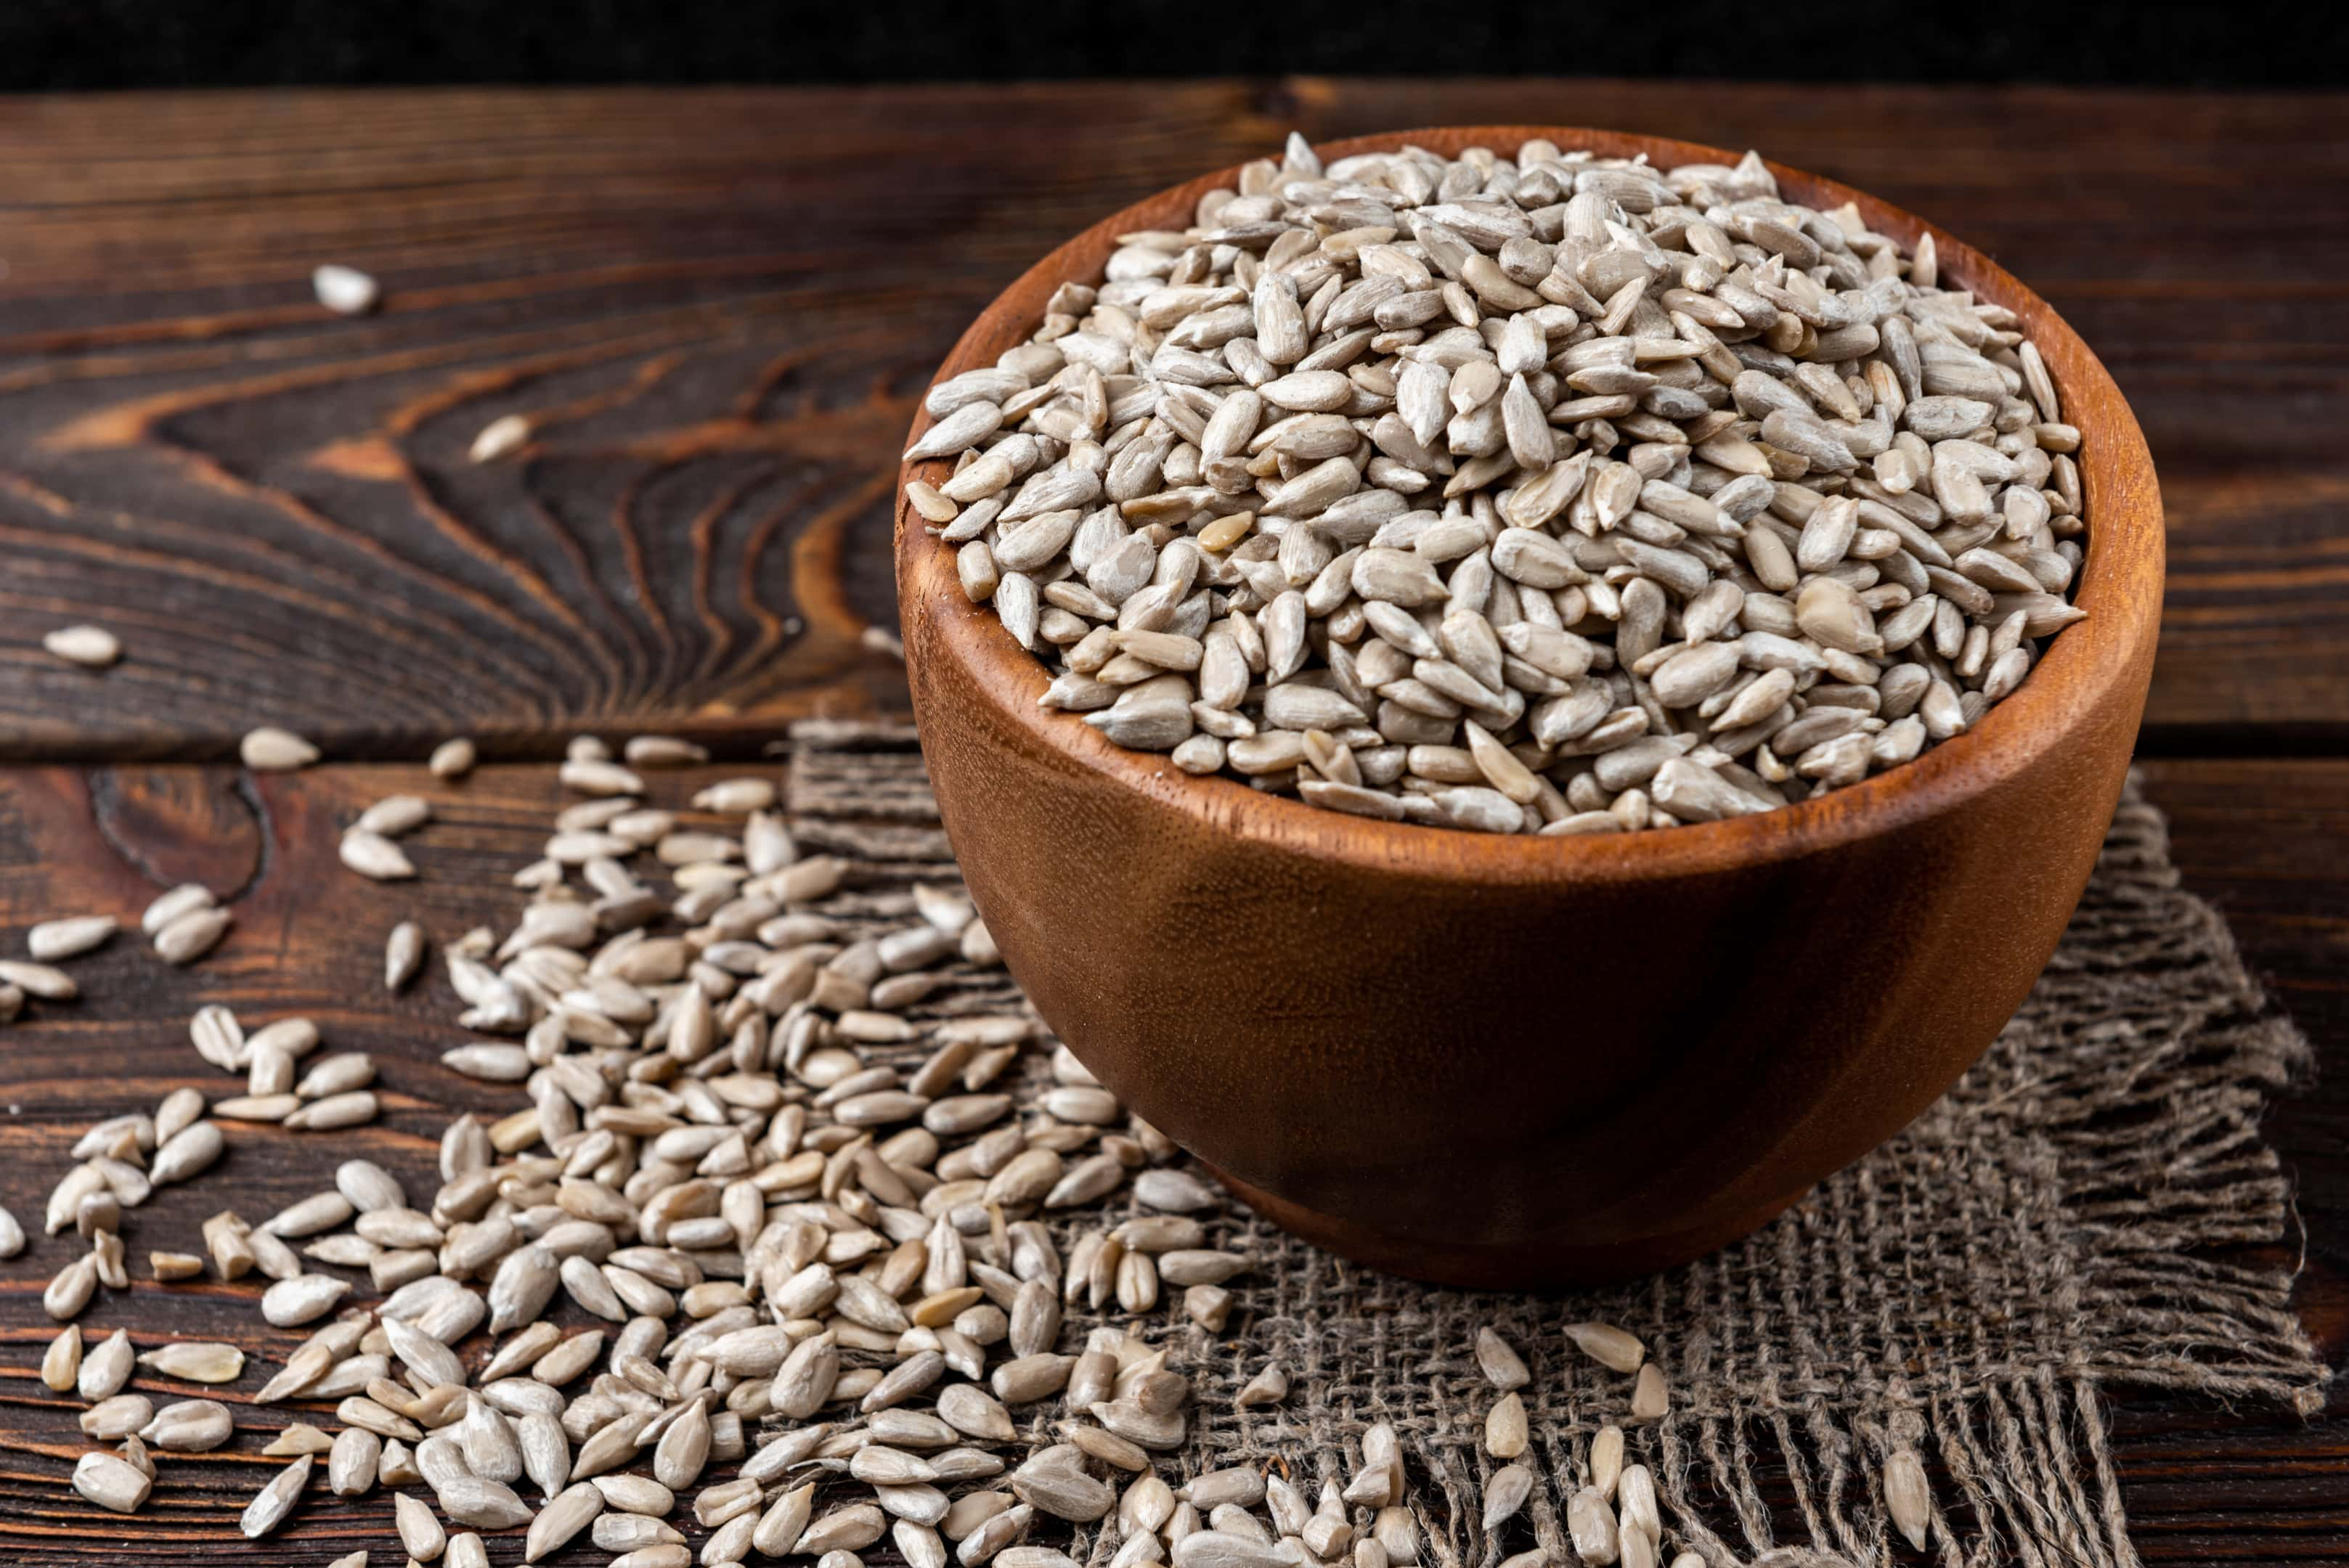 Sunflower seeds in wooden bowl on wooden table